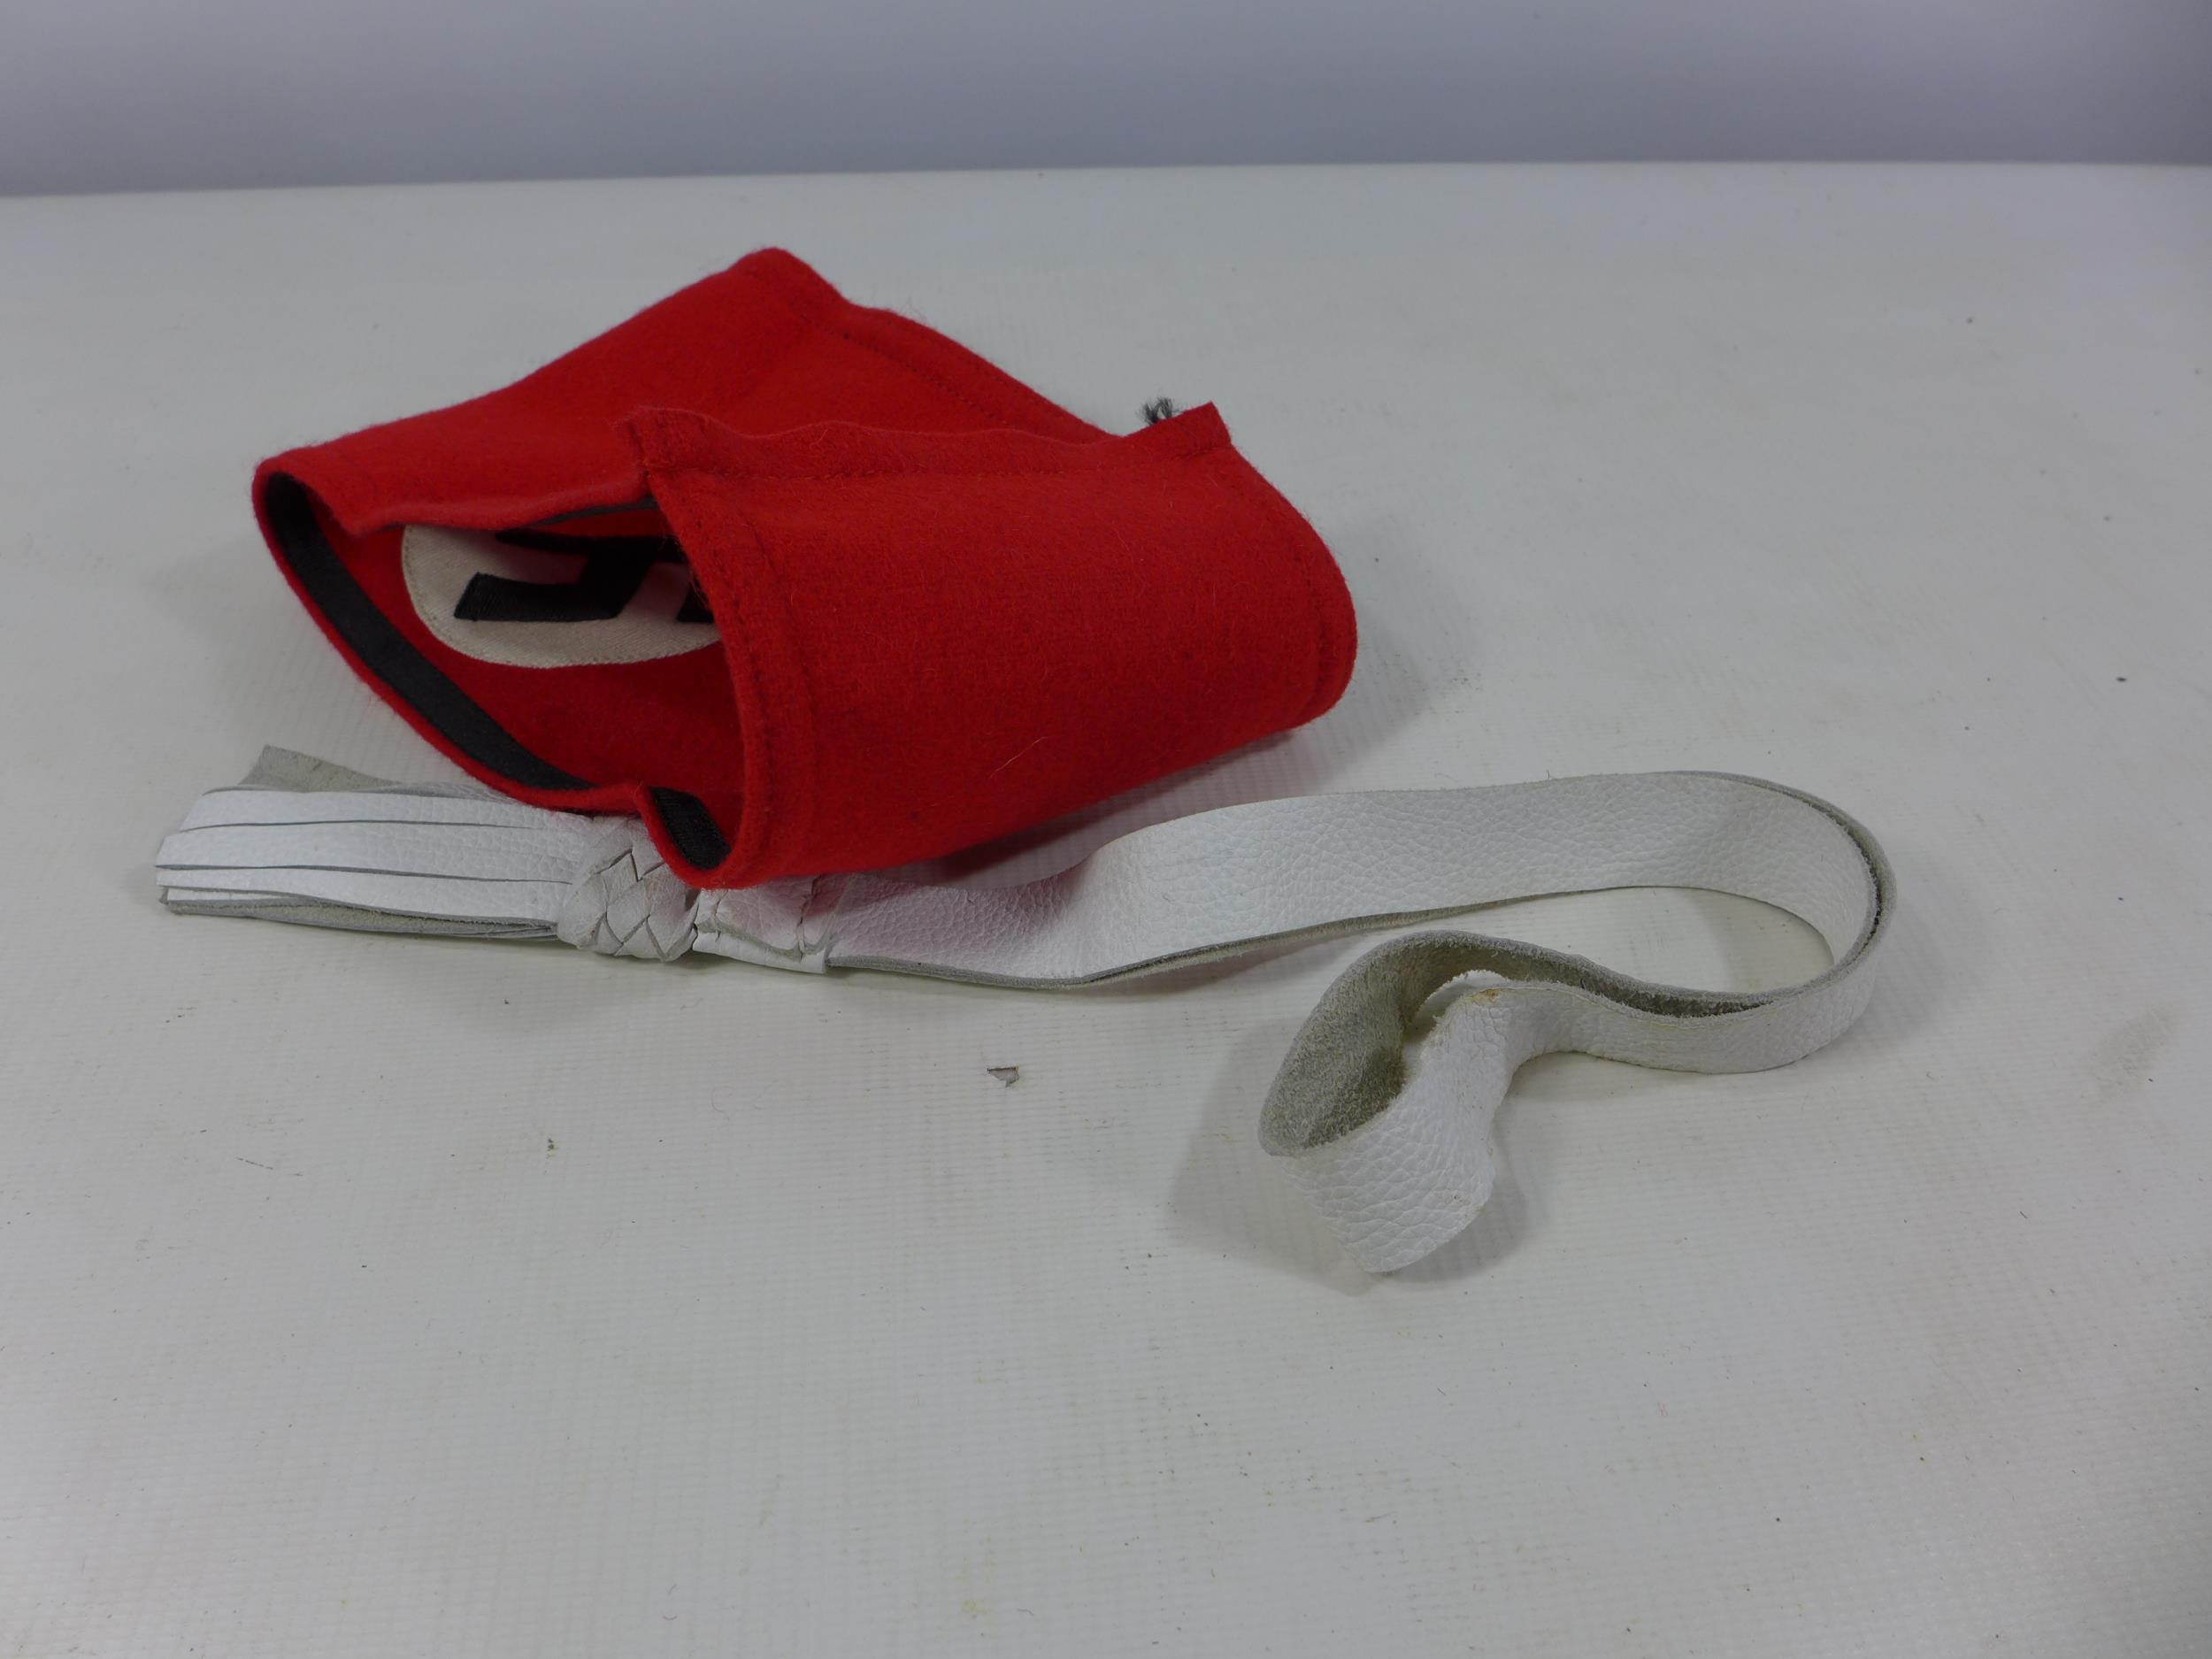 A NAZI ARM BAND AND A WHITE LEATHER TASSLE (2) - Image 3 of 3